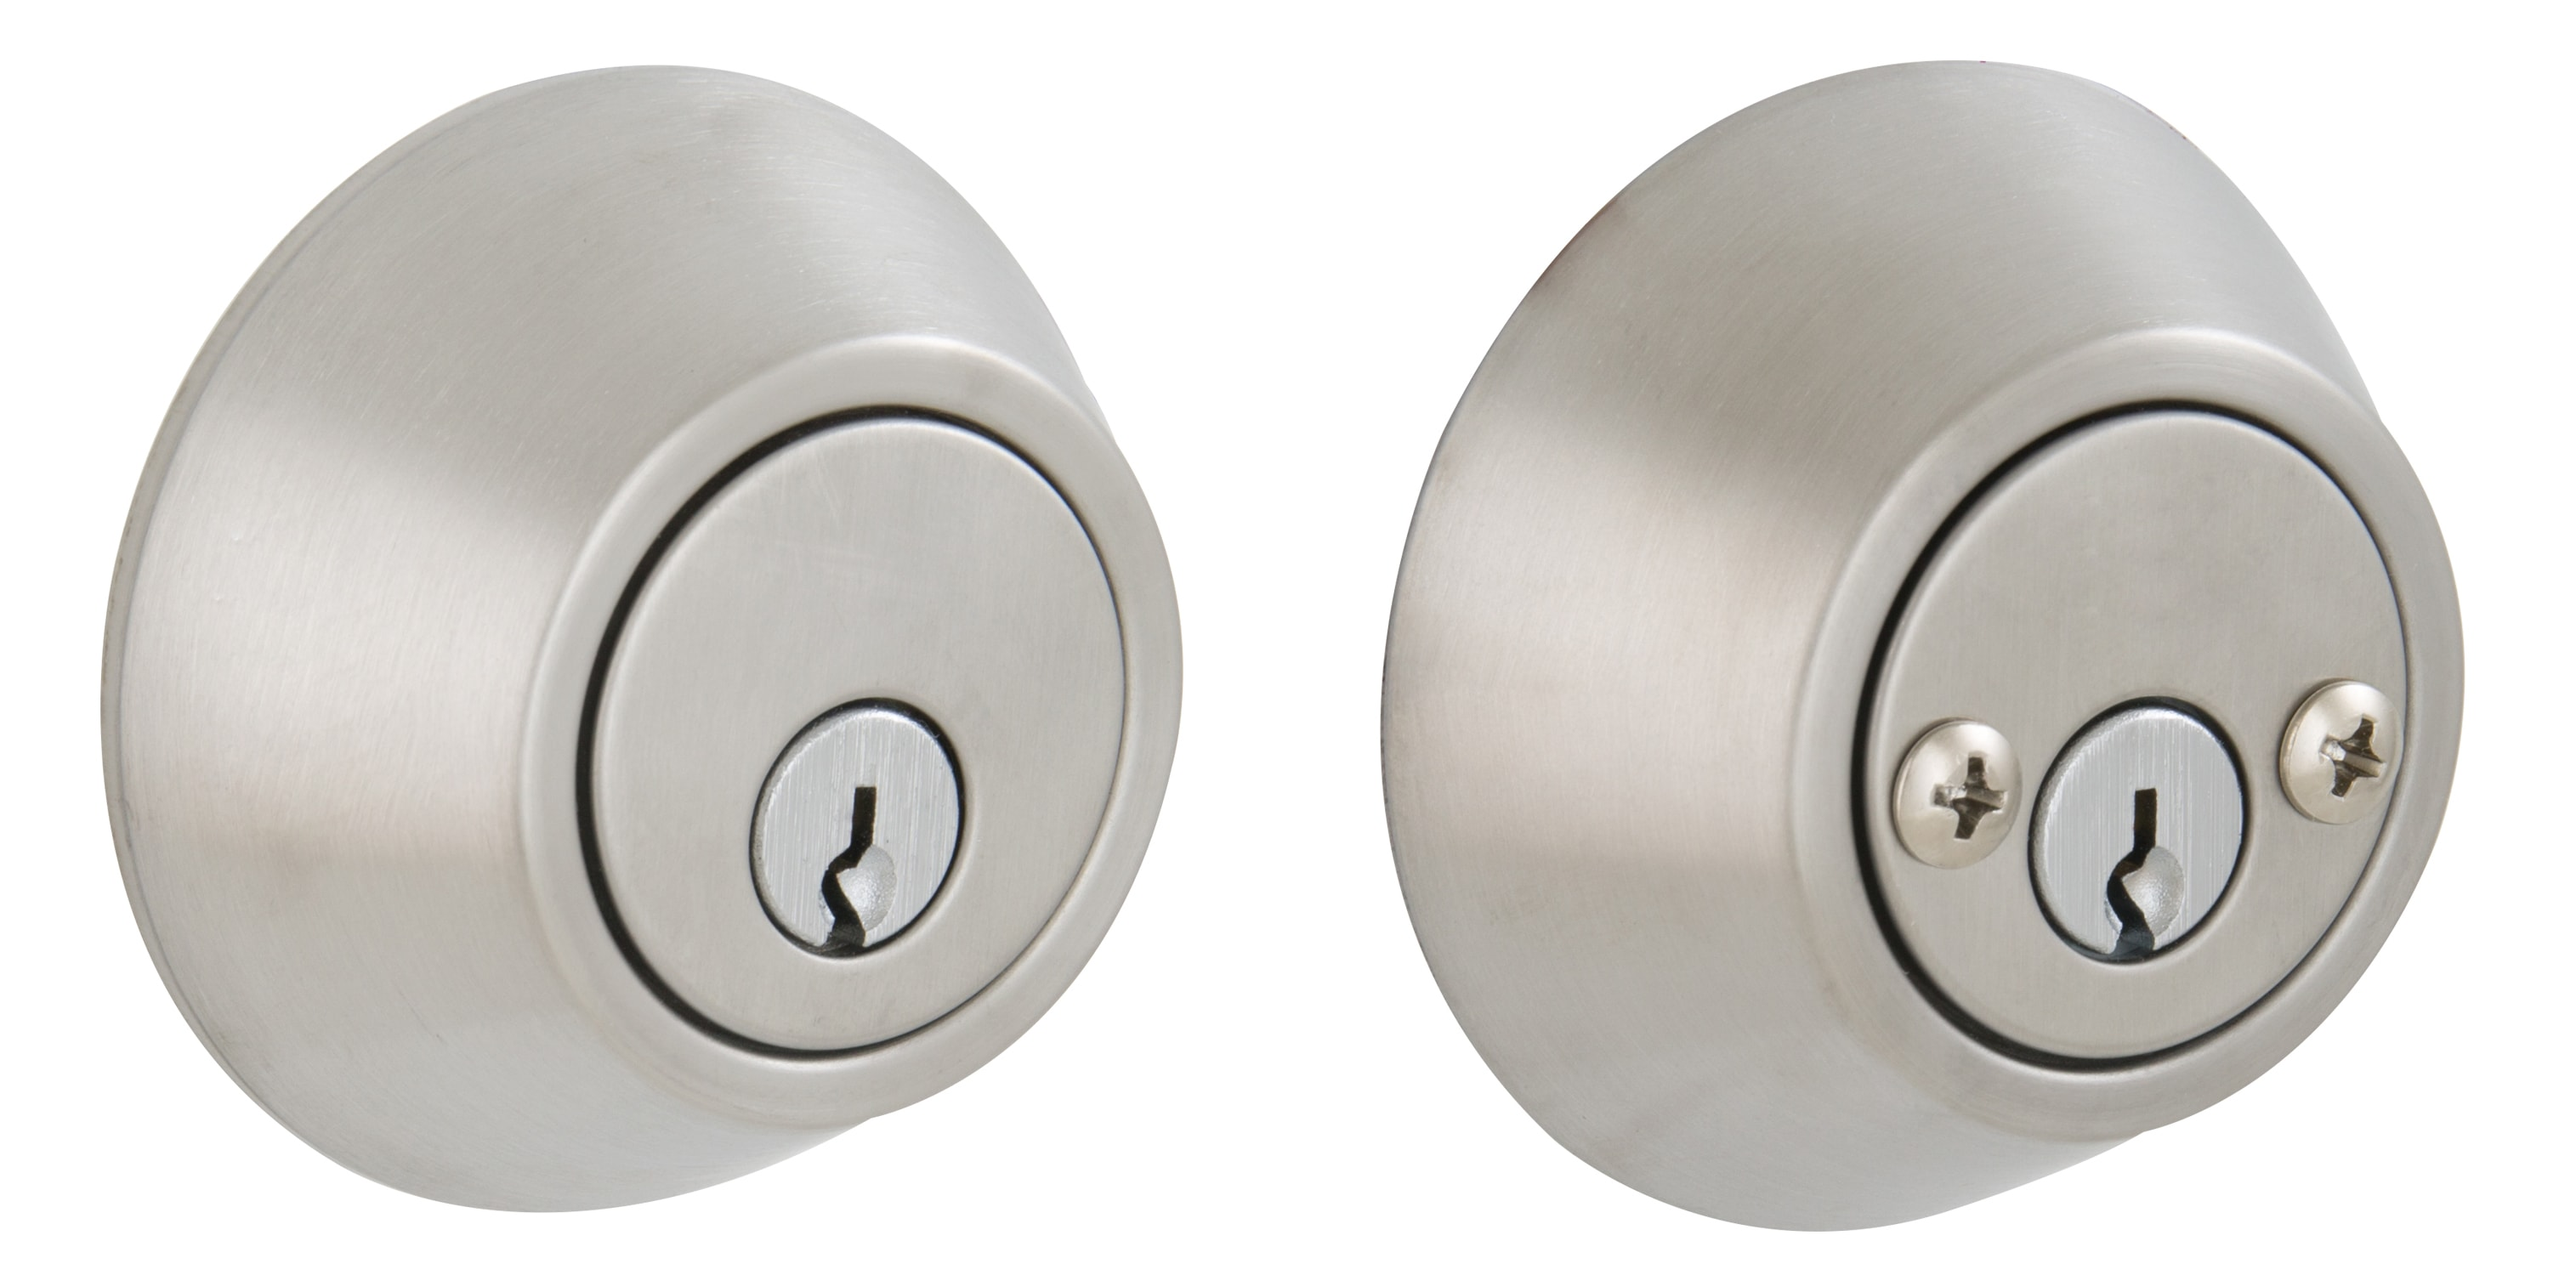 Double Cylinder Deadbolt 630 BST